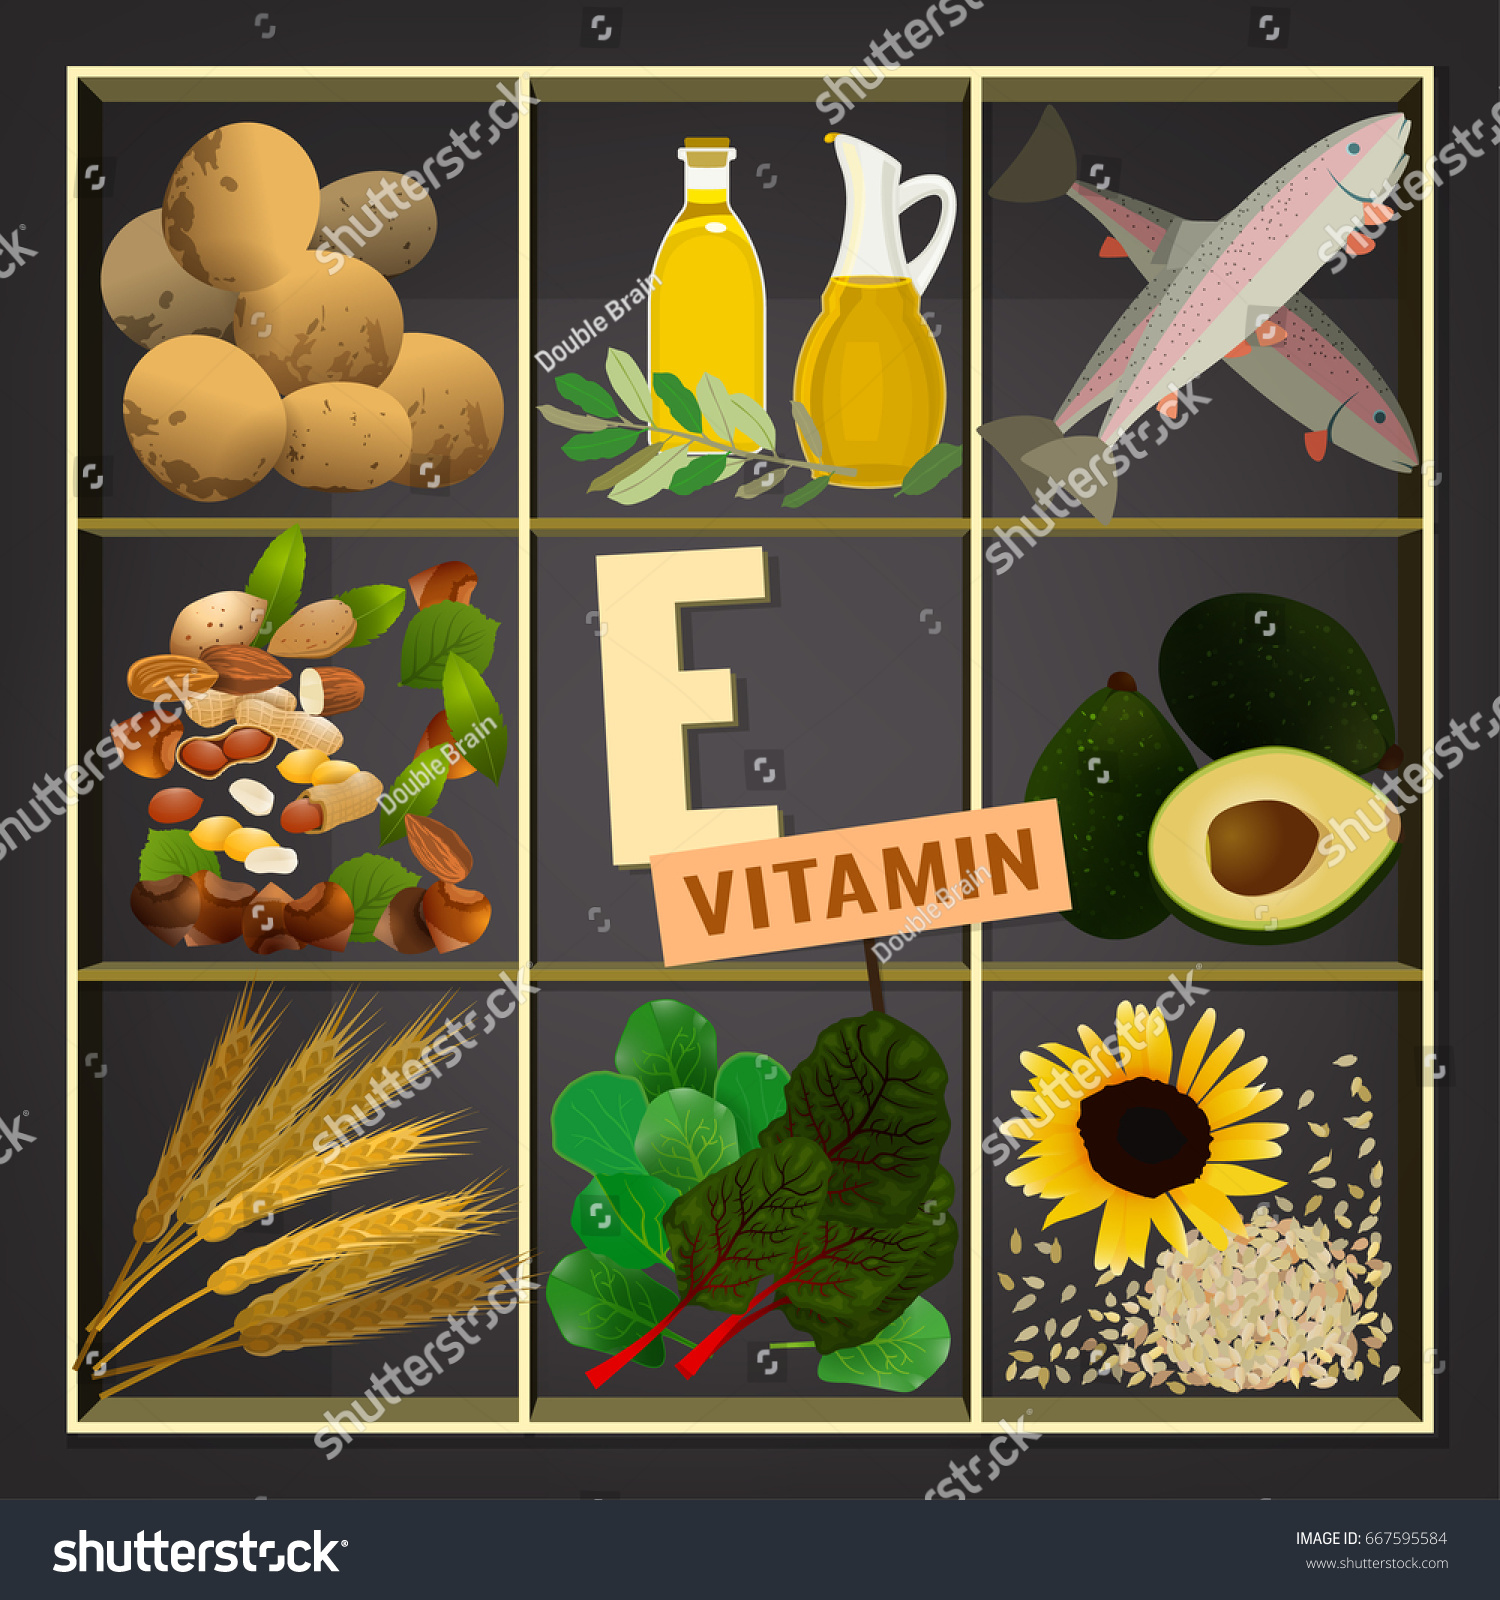 Vitamin e vector illustration foods containing stock vector 2018 vitamin e vector illustration foods containing vitamin e on a dark grey background source workwithnaturefo